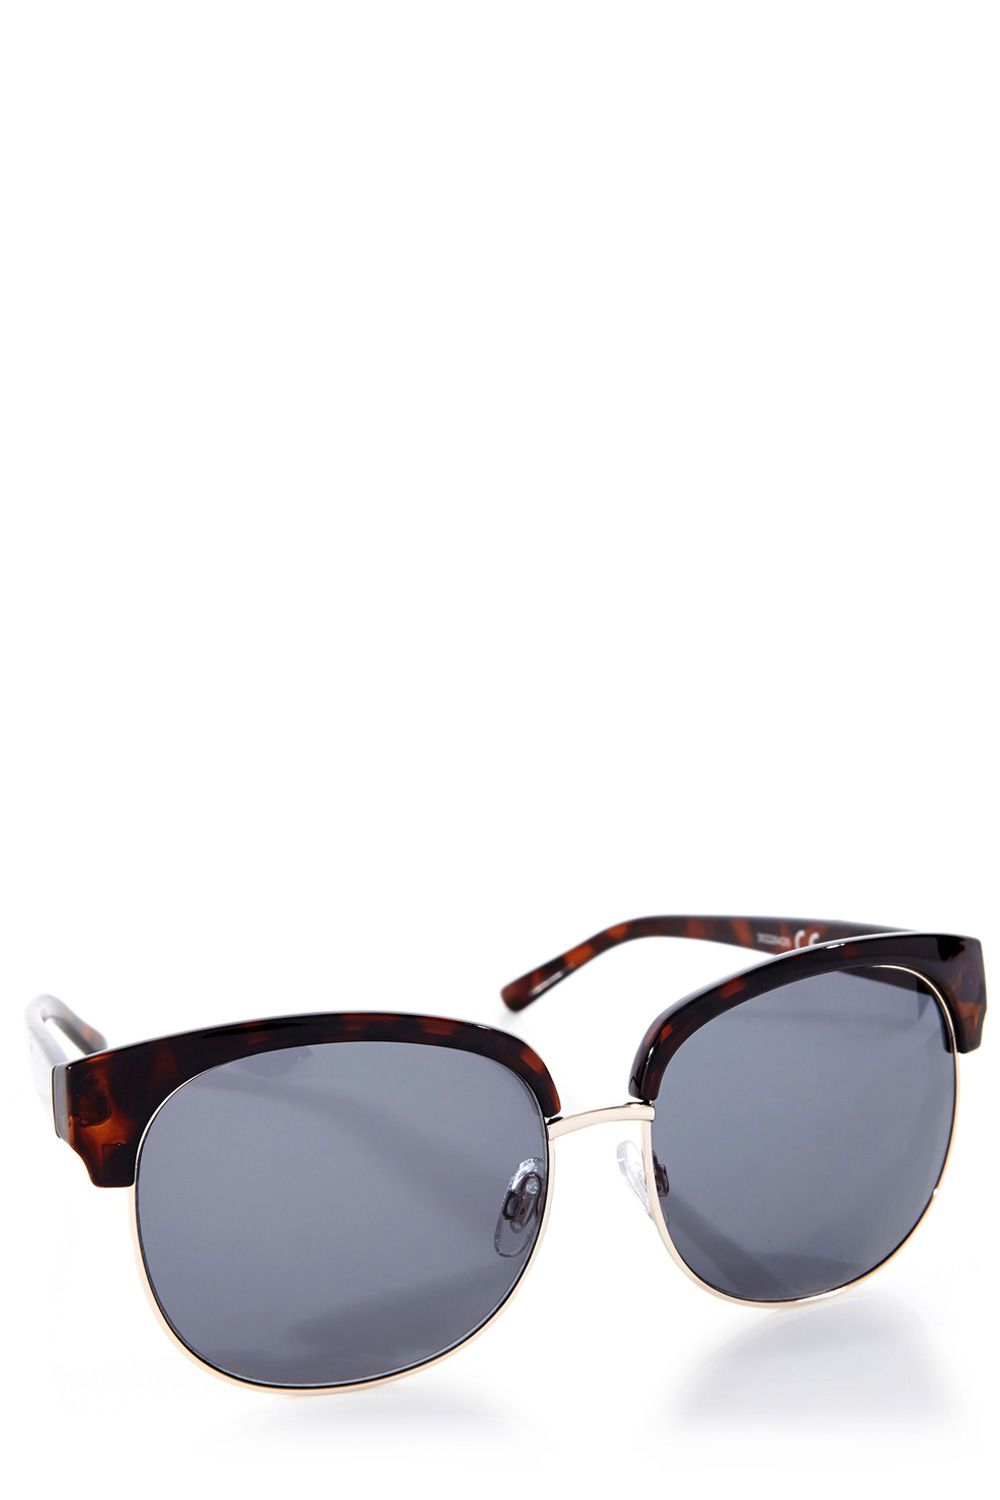 Oversized half metal sunglasses